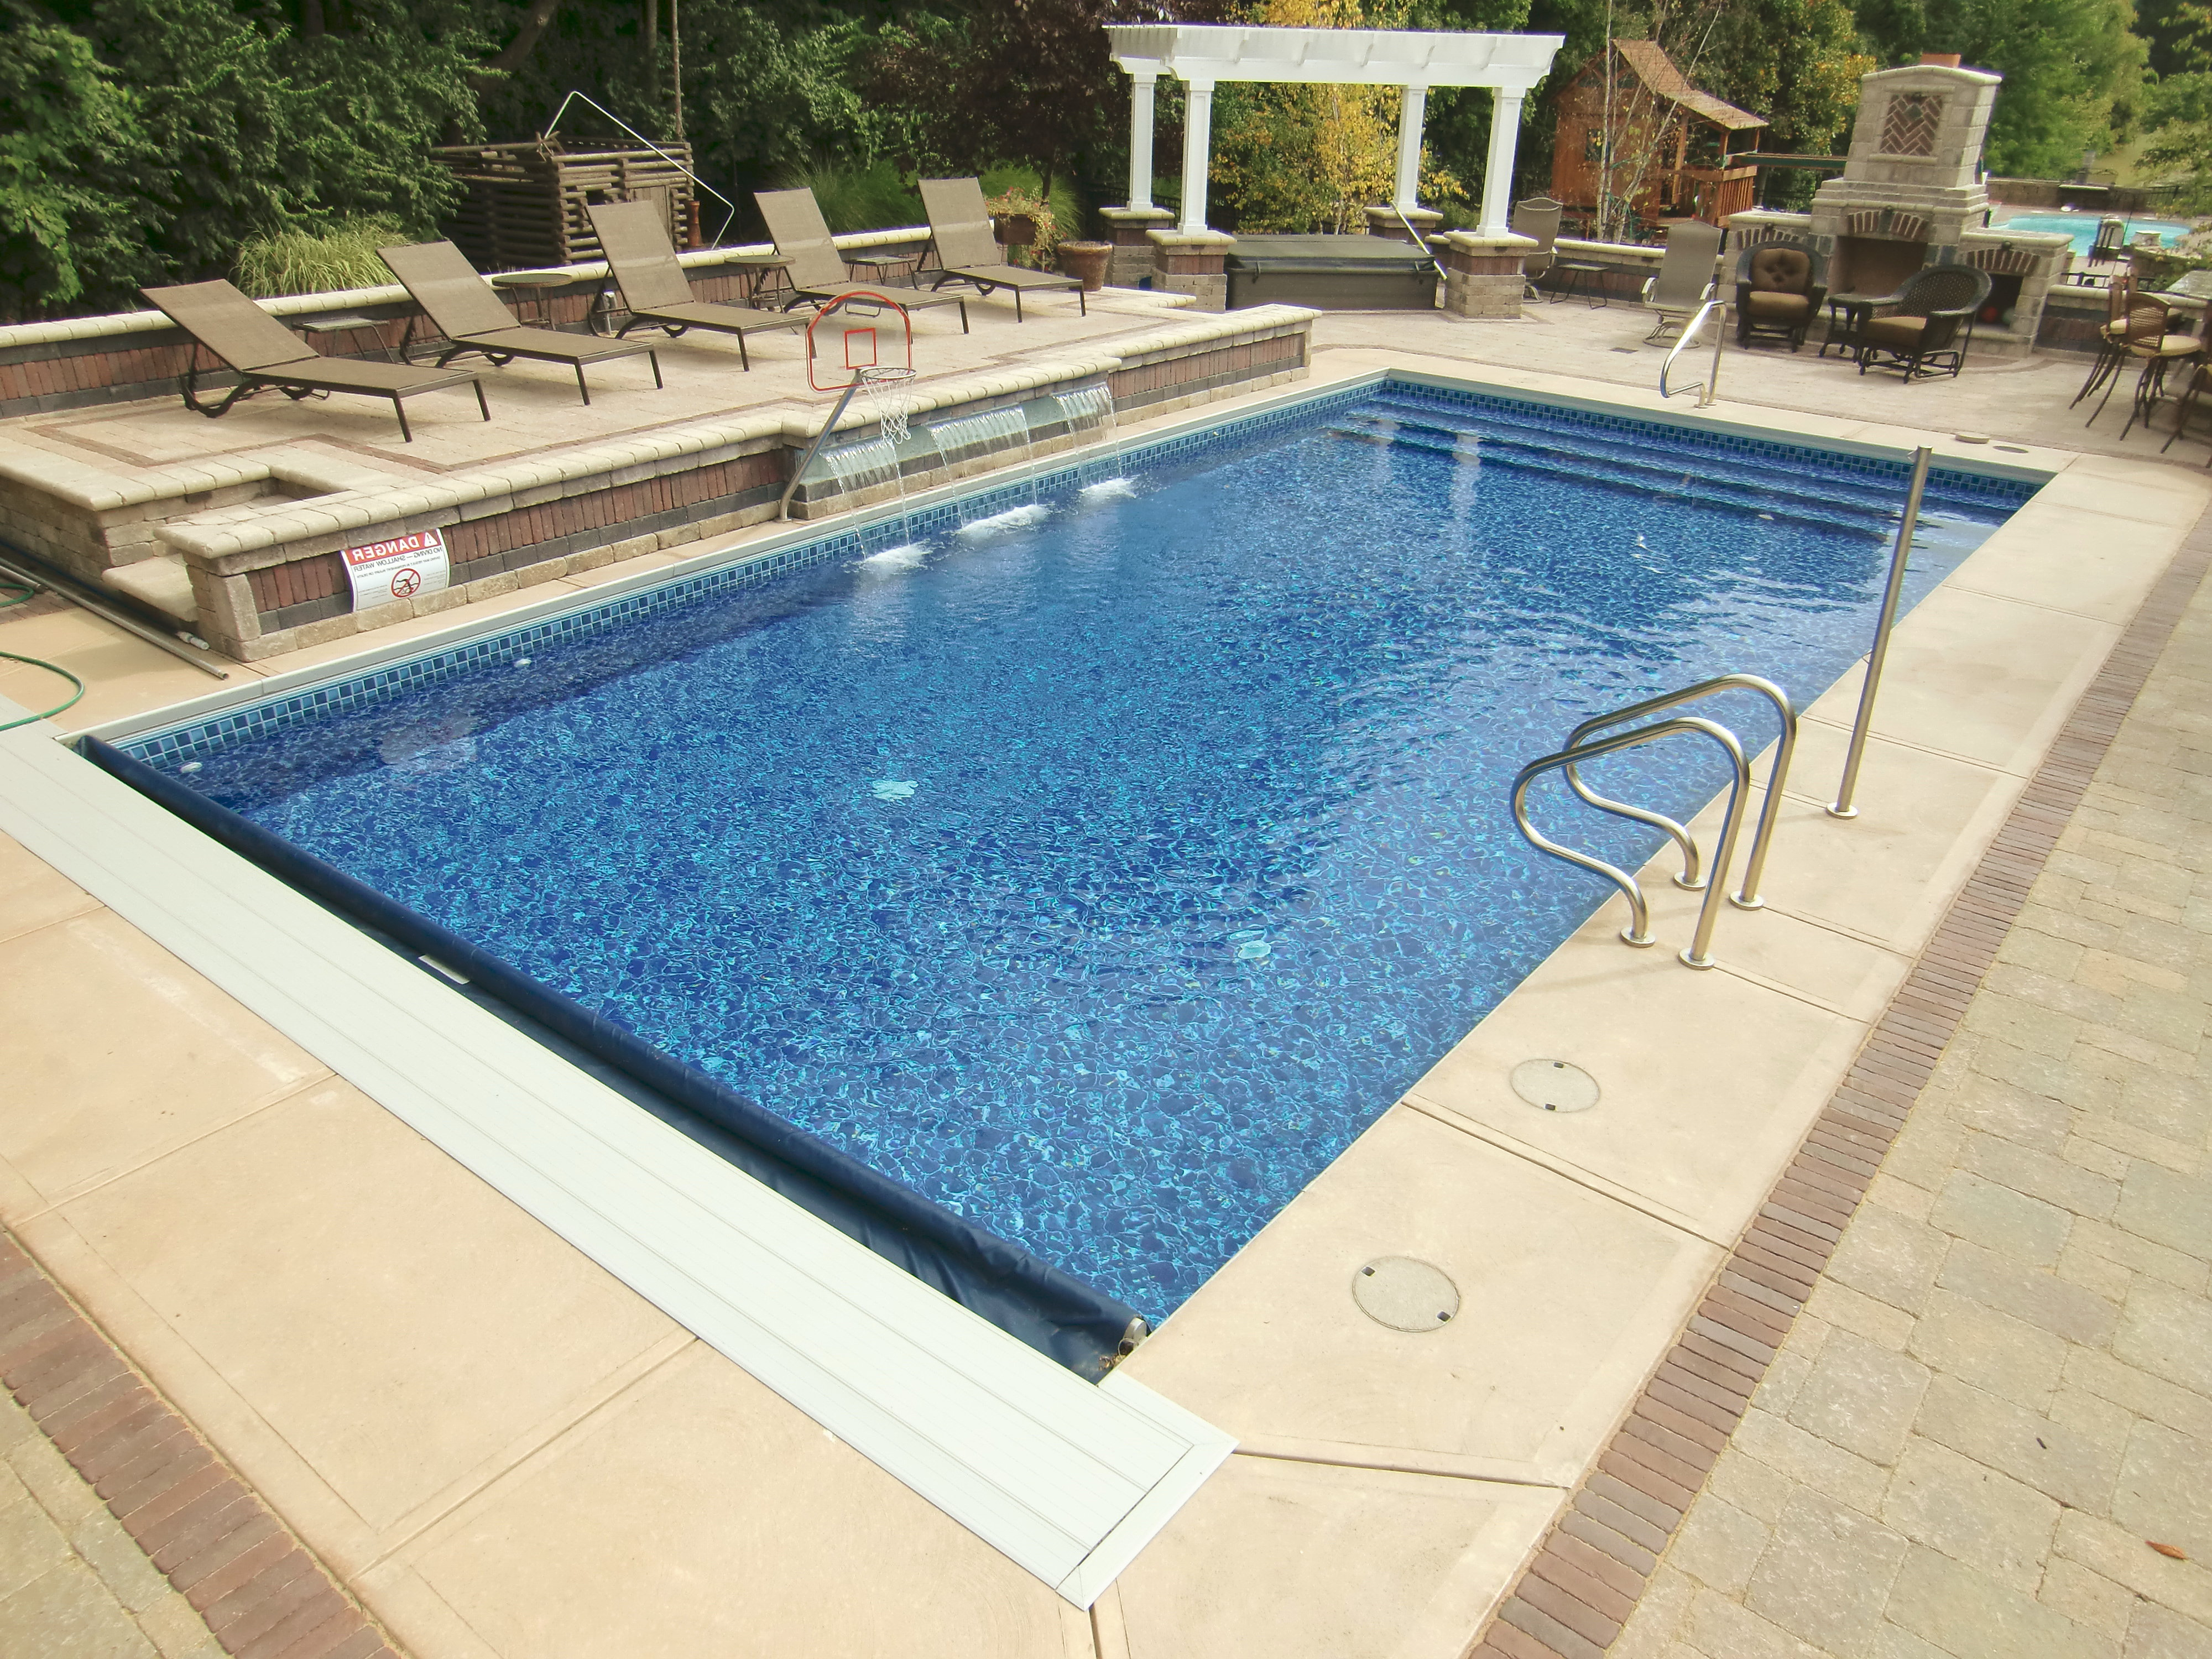 Vinyl Liner Pool Designs this swimming pool is a computer generated design from latham pool products this liners Vinyl Liner Pools In Central Indiana Top 6 Reasons To Buy